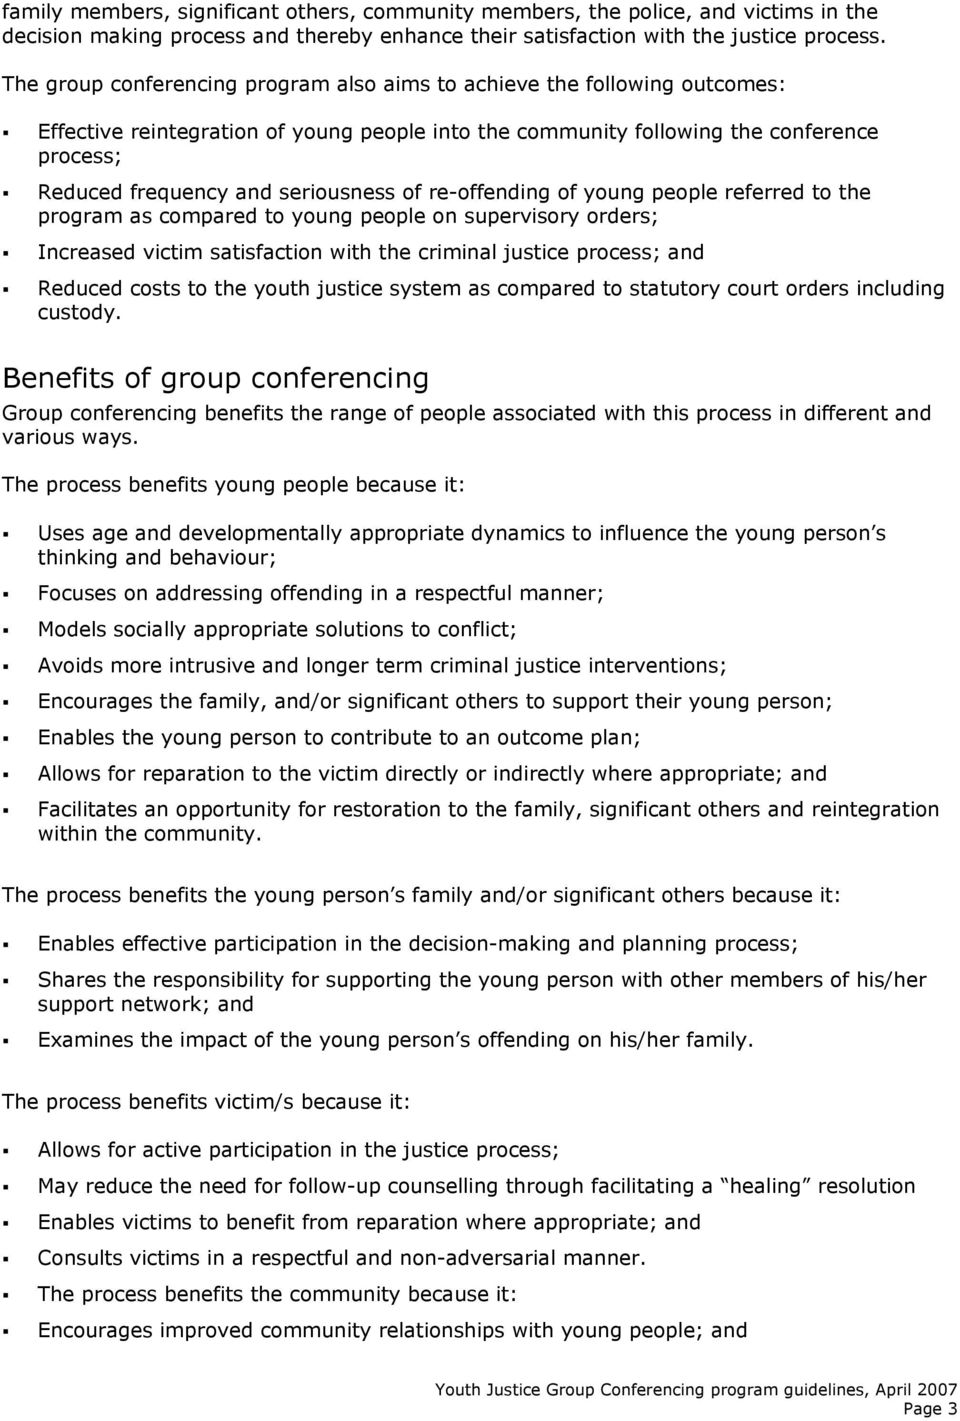 seriousness of re-offending of young people referred to the program as compared to young people on supervisory orders; Increased victim satisfaction with the criminal justice process; and Reduced